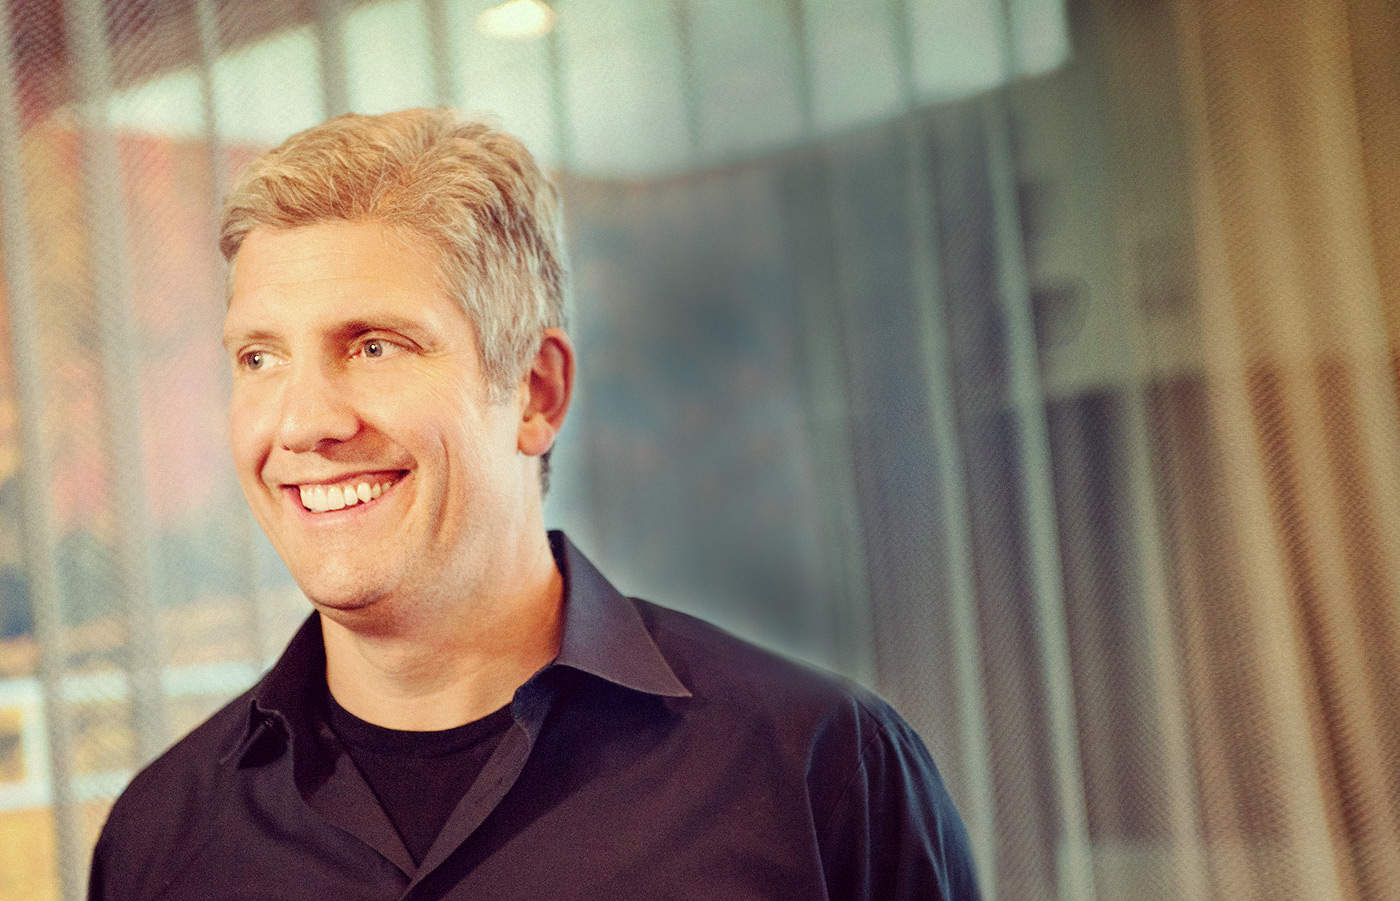 Google's newest VP, Rich Osterloh. Photo: Motorola